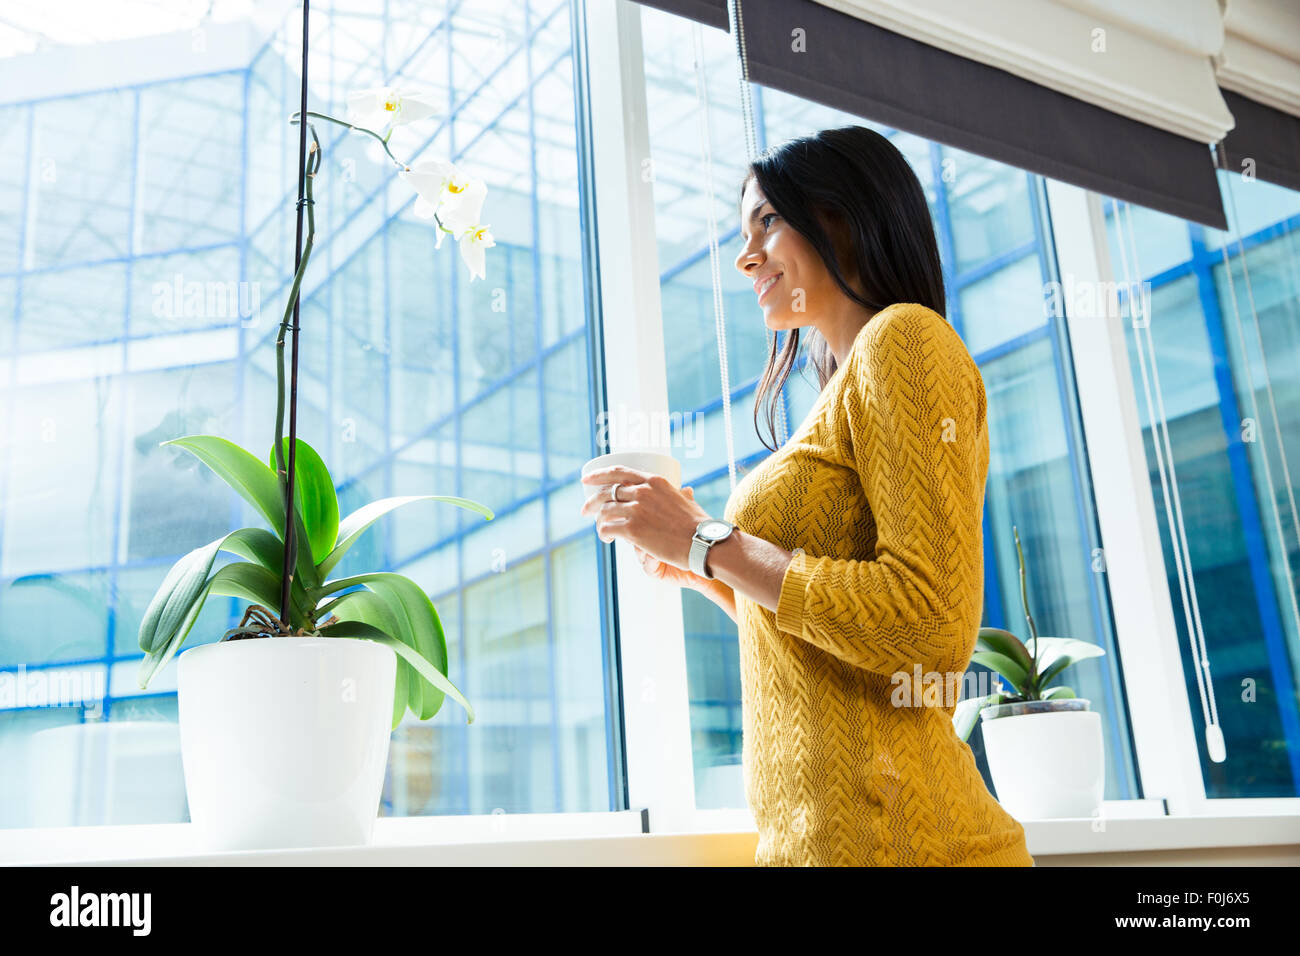 Portrait of a smiling businesswoman holding cup avec café et à at window in office Photo Stock